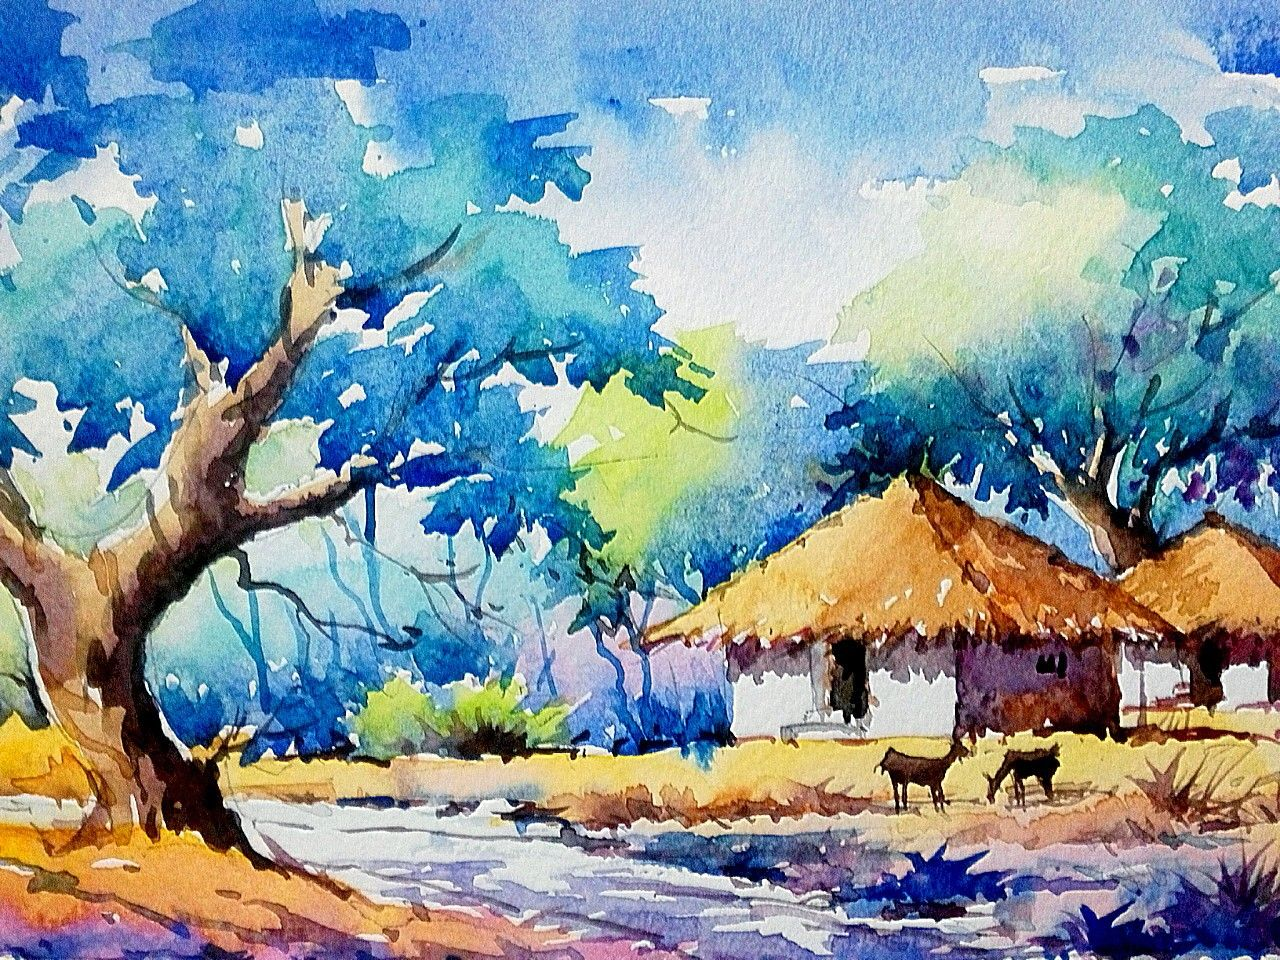 Pin By Thulasi Das On My Selections Watercolor Landscape